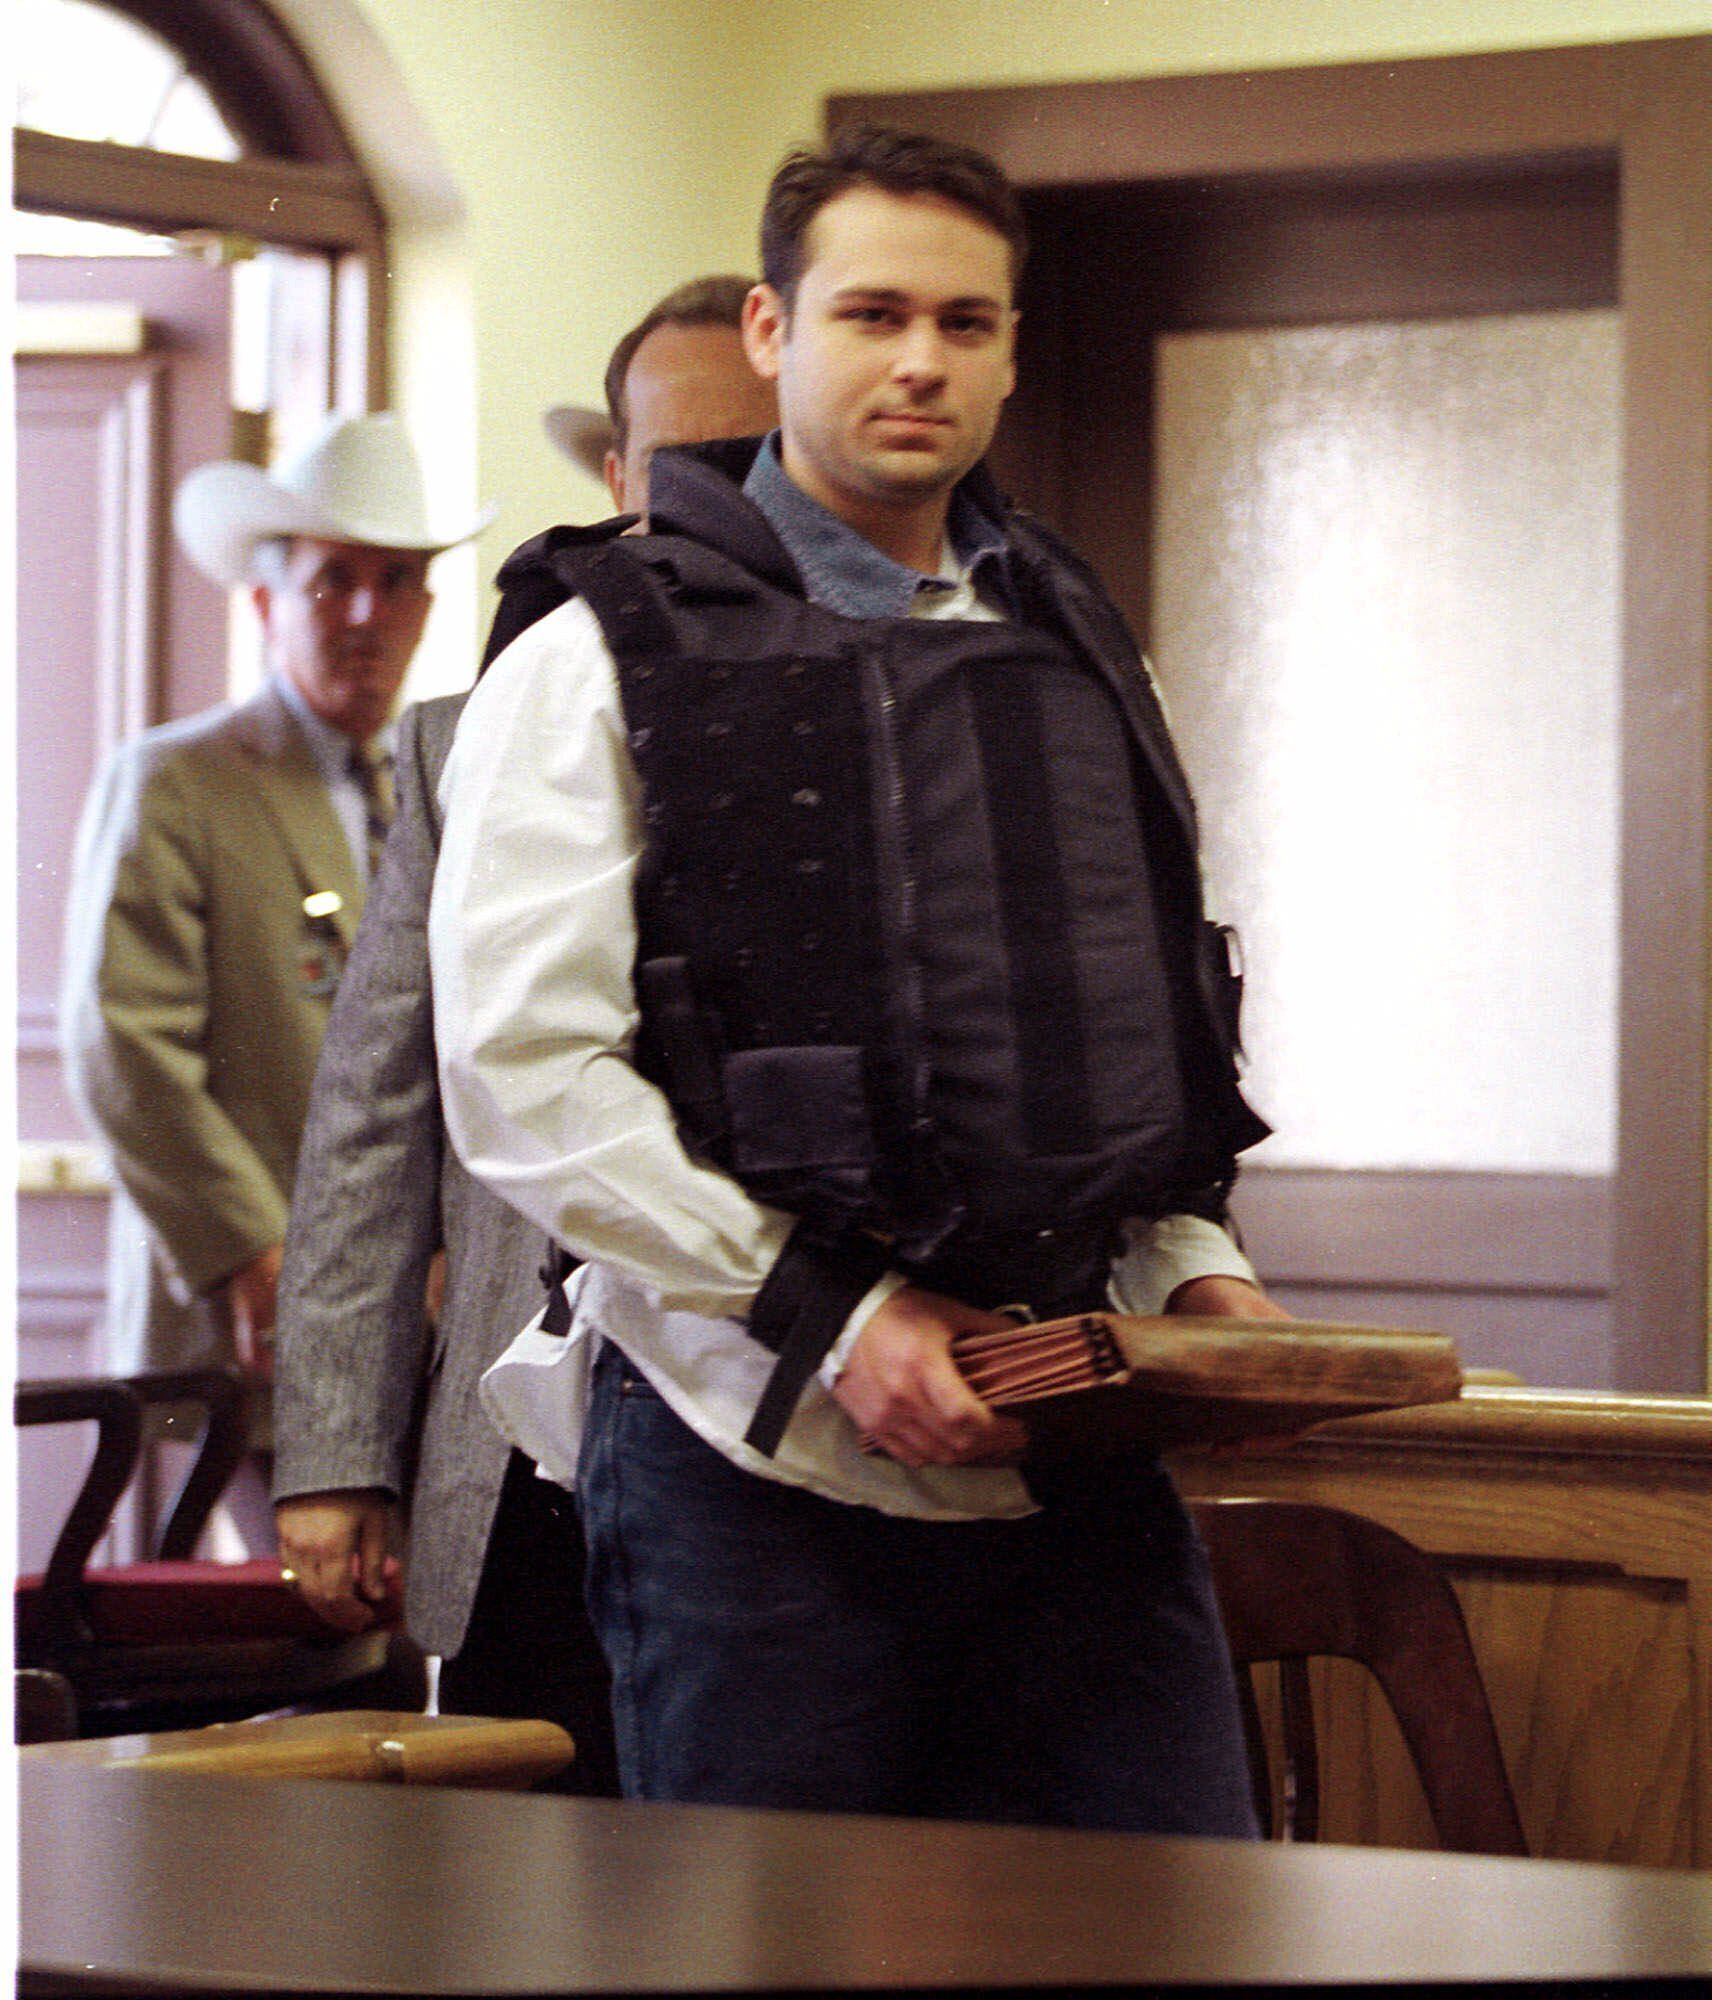 Convicted killer John William King is escorted into the Jasper County Courthouse for the punishment phase of his trial Wednesday, Feb. 24, 1999, in Jasper, Texas. King was convicted of capital murder in the dragging death of James Byrd Jr. (AP Photo/Adrees Latif)